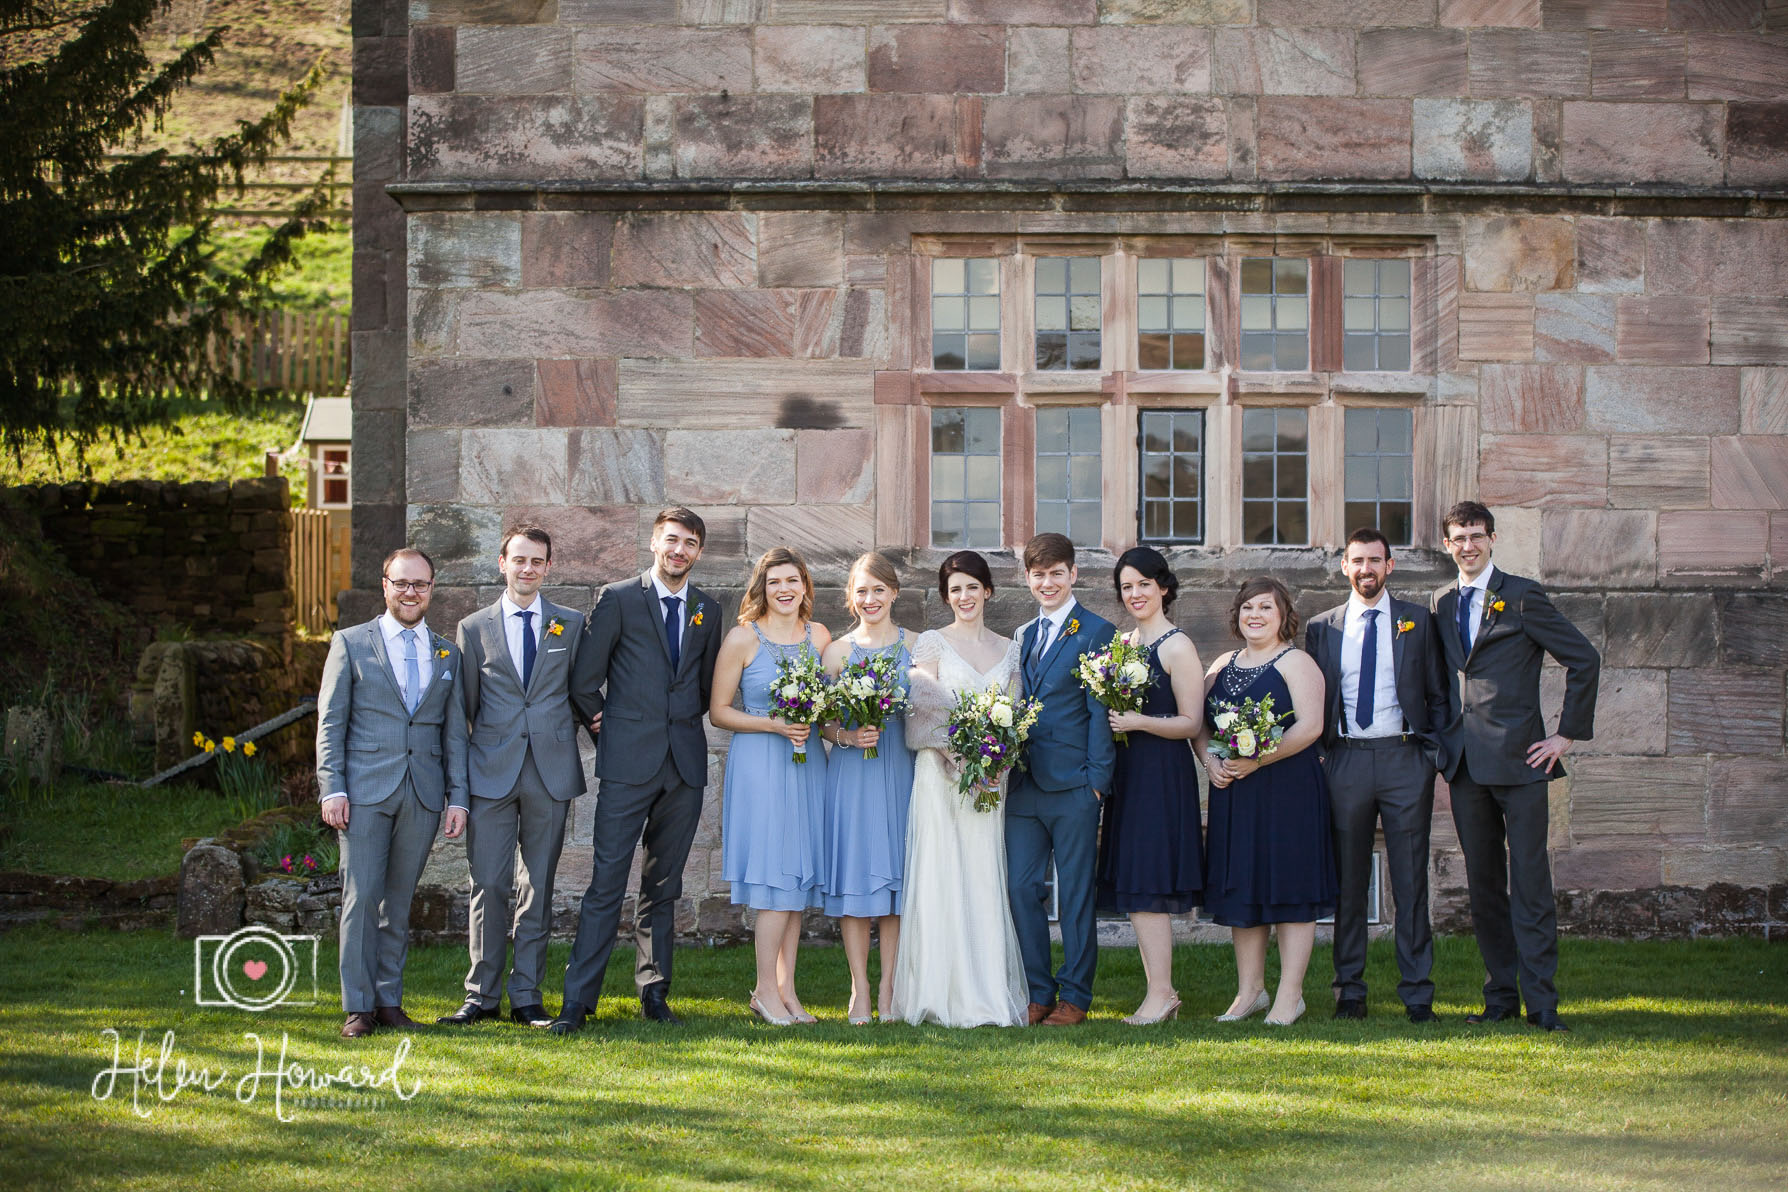 Wedding at The Ashes Venue-32.jpg